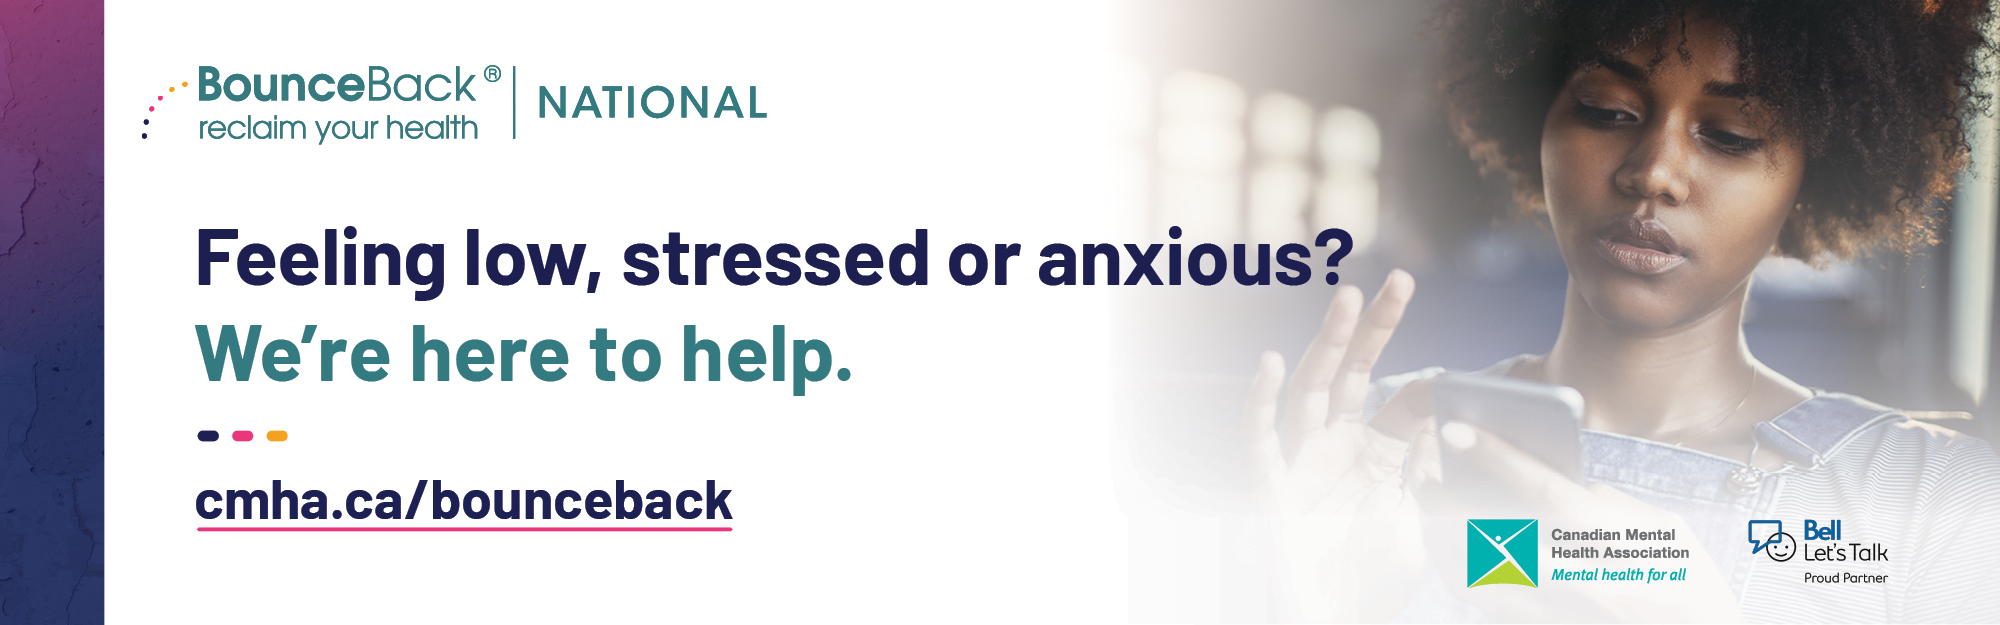 "Picture of young adult using smartphone, text to the left side reads, ""BounceBack, reclaim your health, National: Feeling low, stressed or anxious? We're here to help. cmha.ca/bounceback"